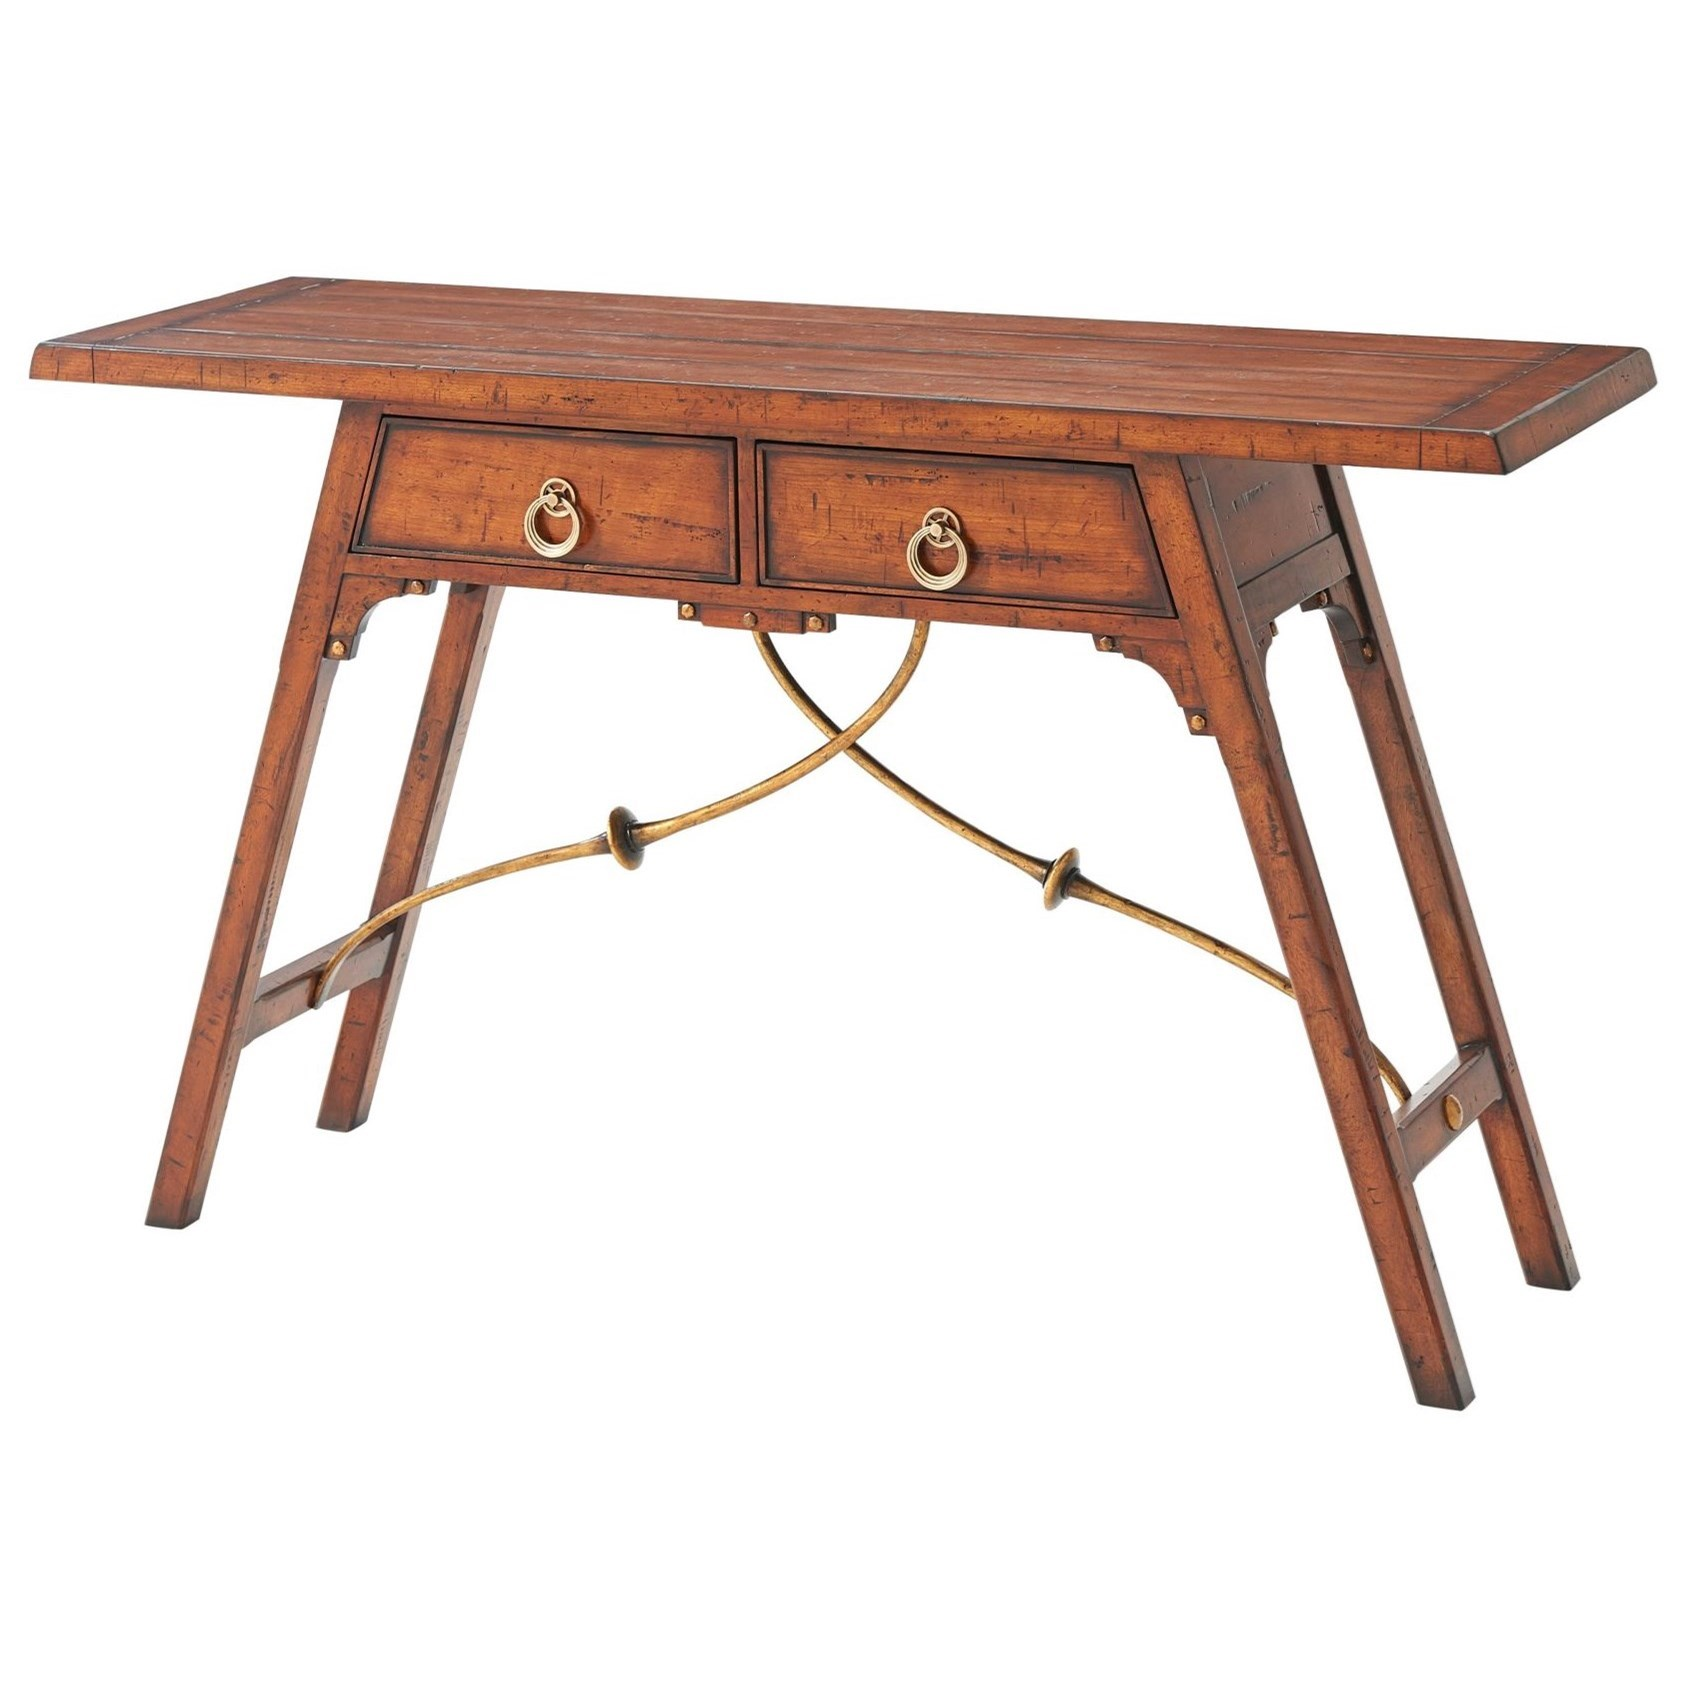 Theodore Alexander Tables Aragon Console - Item Number: 5305-221